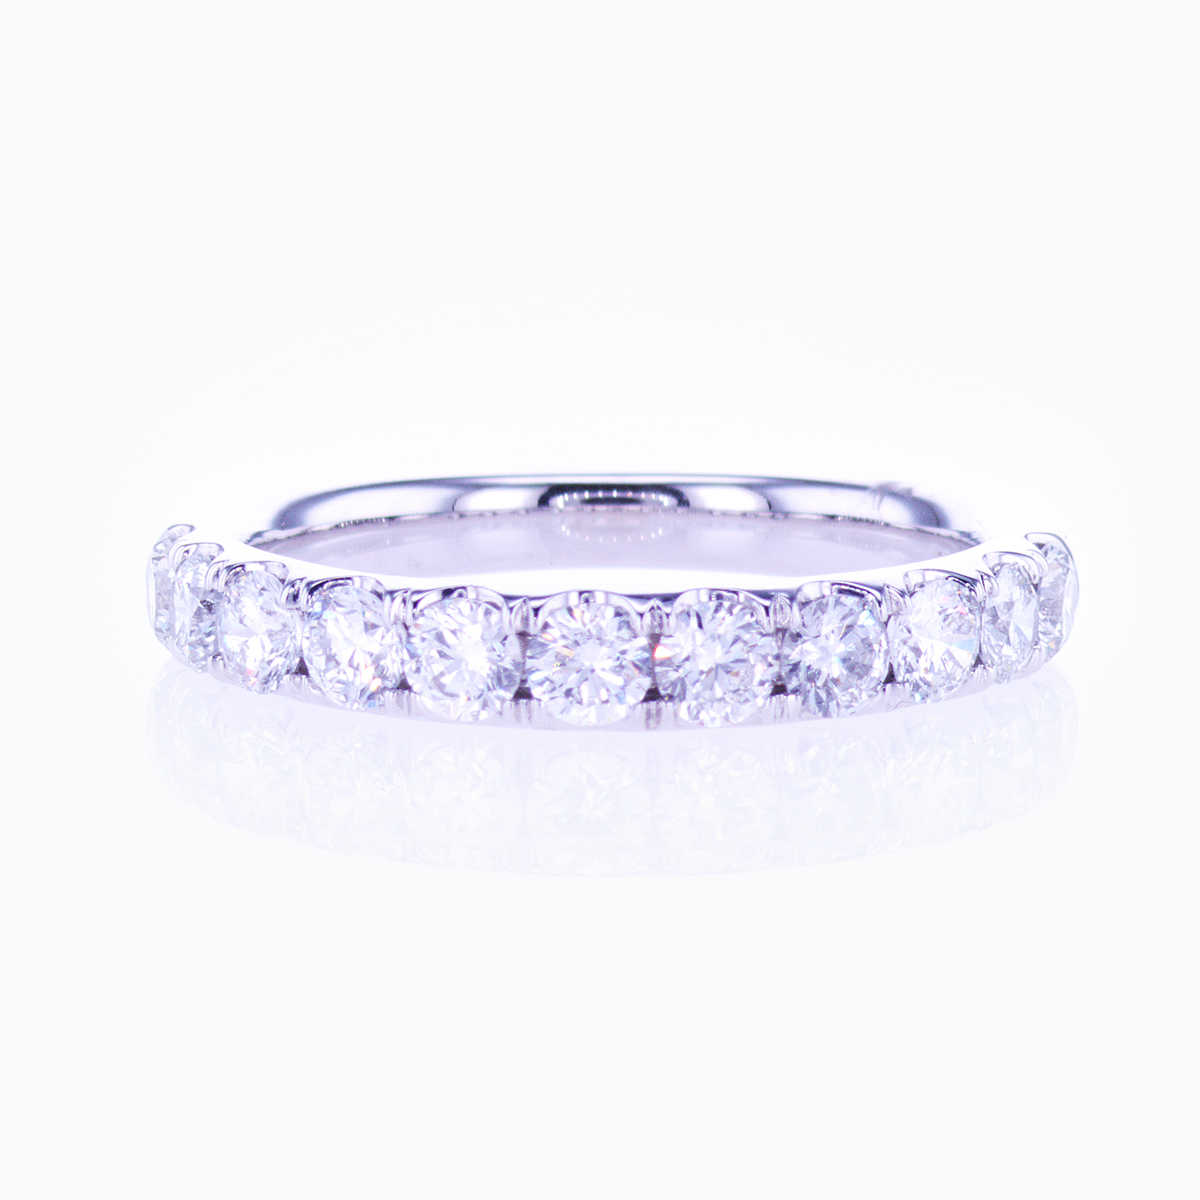 Lab-Grown Diamond Band Ring